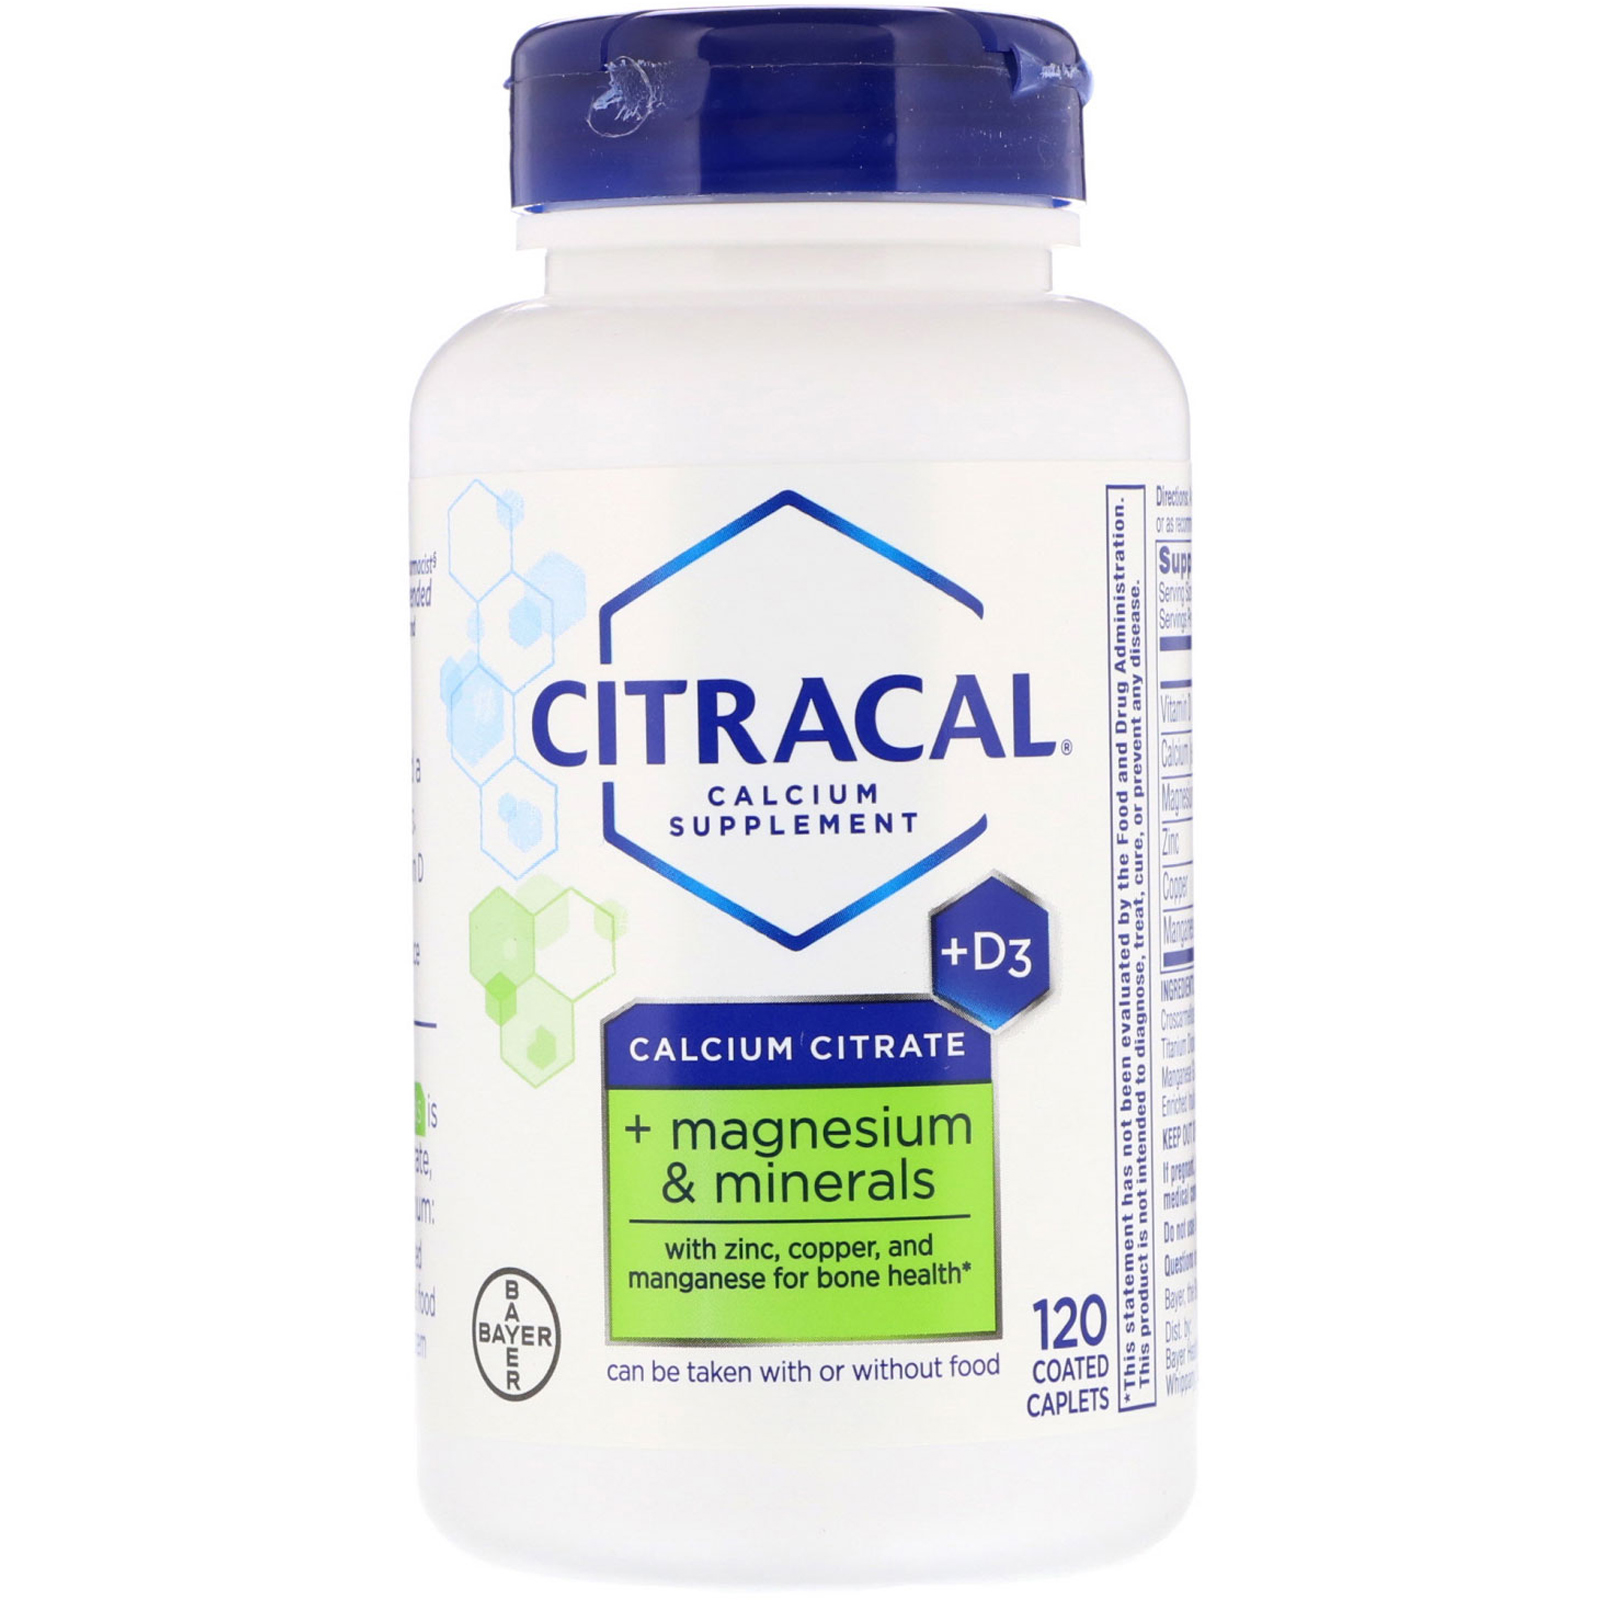 Citracal, Calcium Citrate, + Magnesium & Minerals, +D3, 120